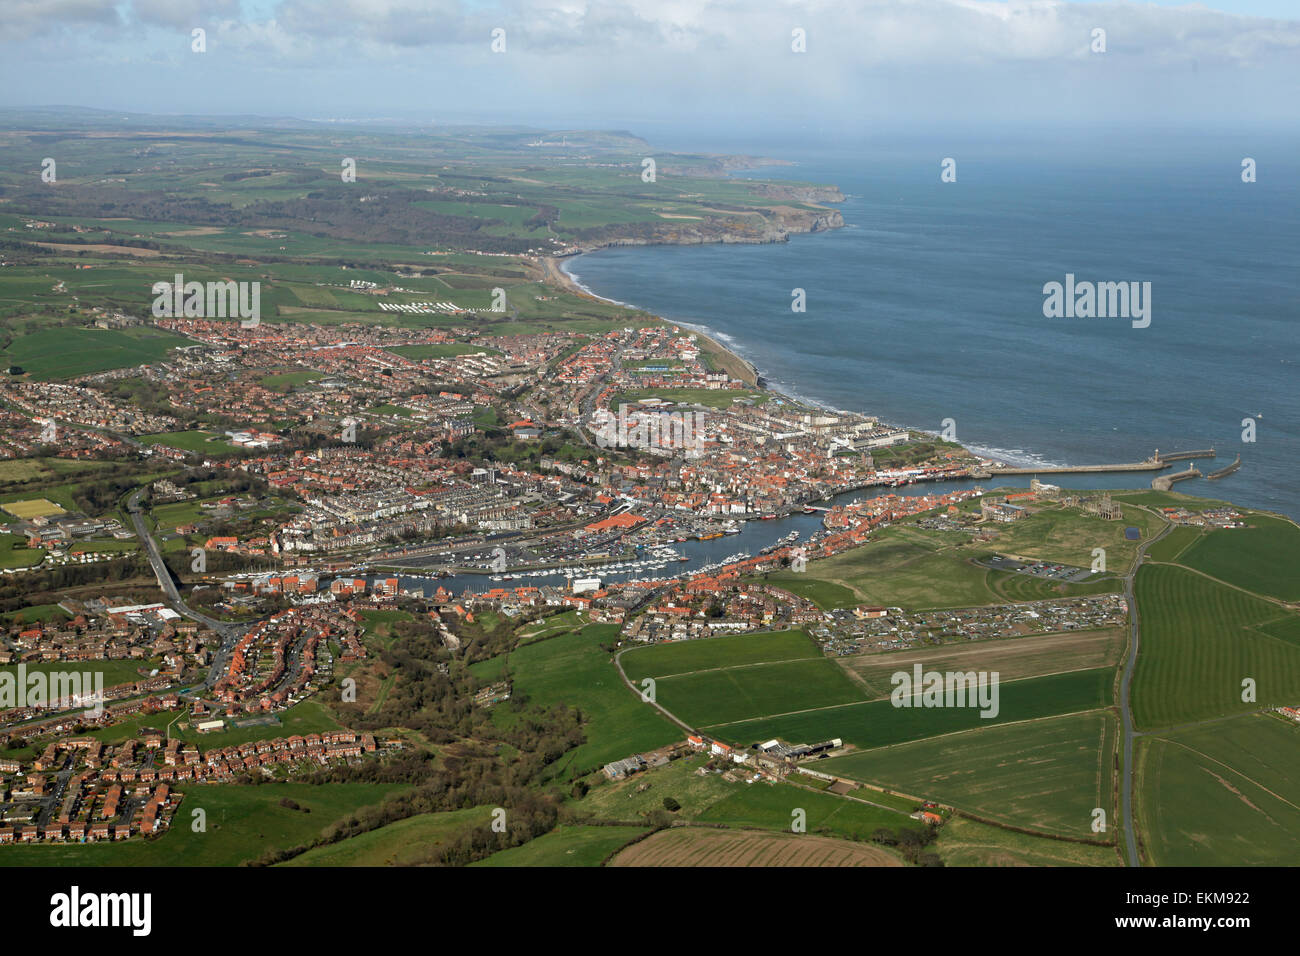 aerial view of Whitby and the North Yorkshire Coast, England, UK - Stock Image